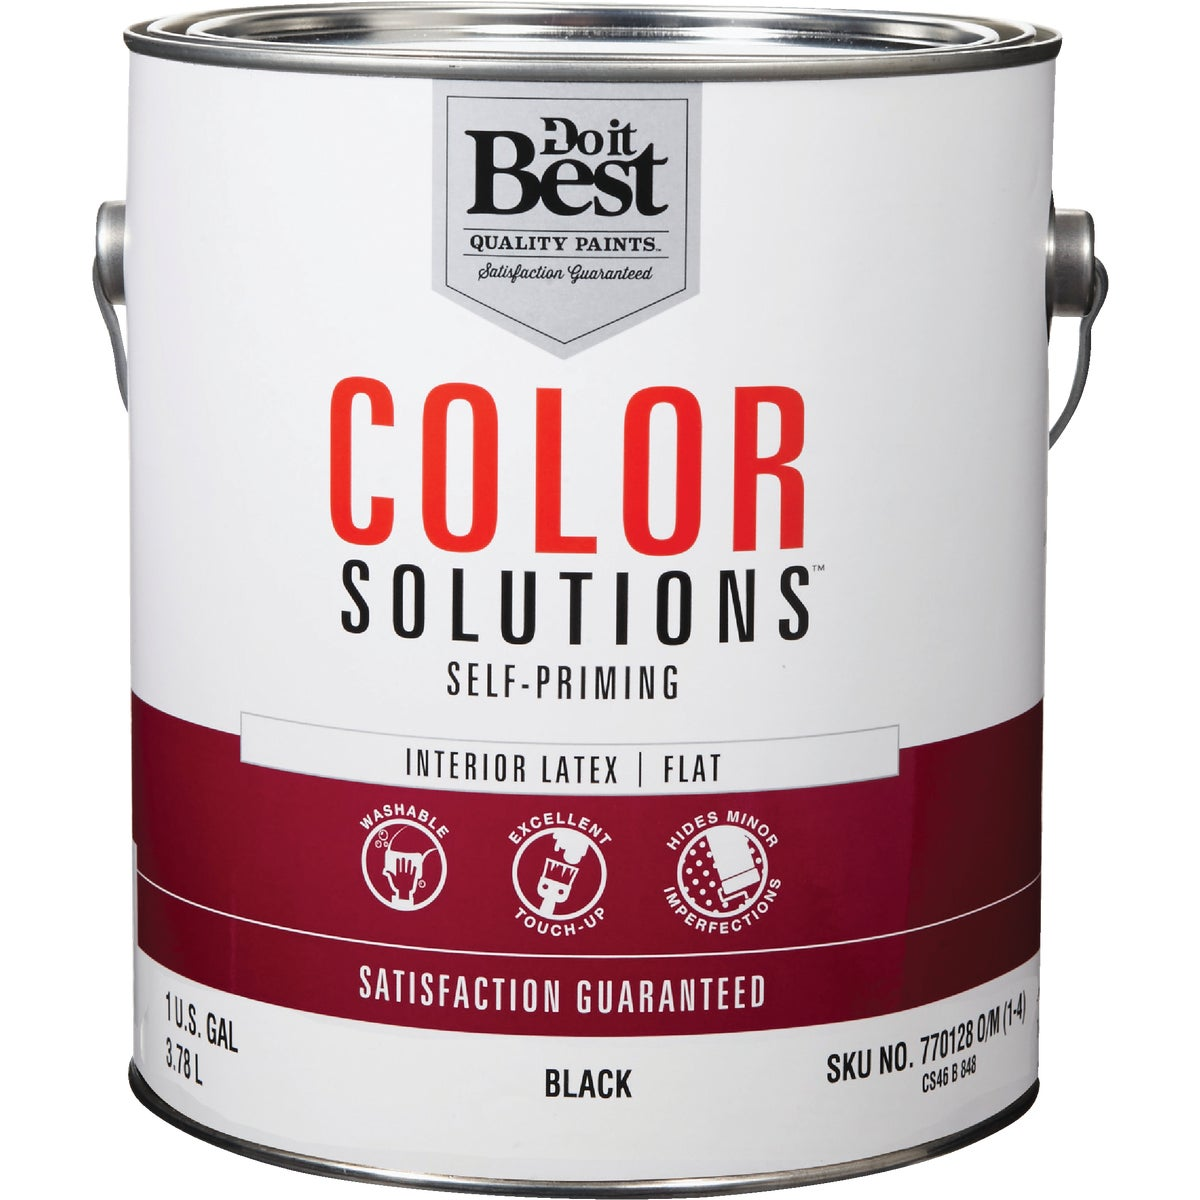 INT FLAT BLACK PAINT - CS46B0848-16 by Do it Best